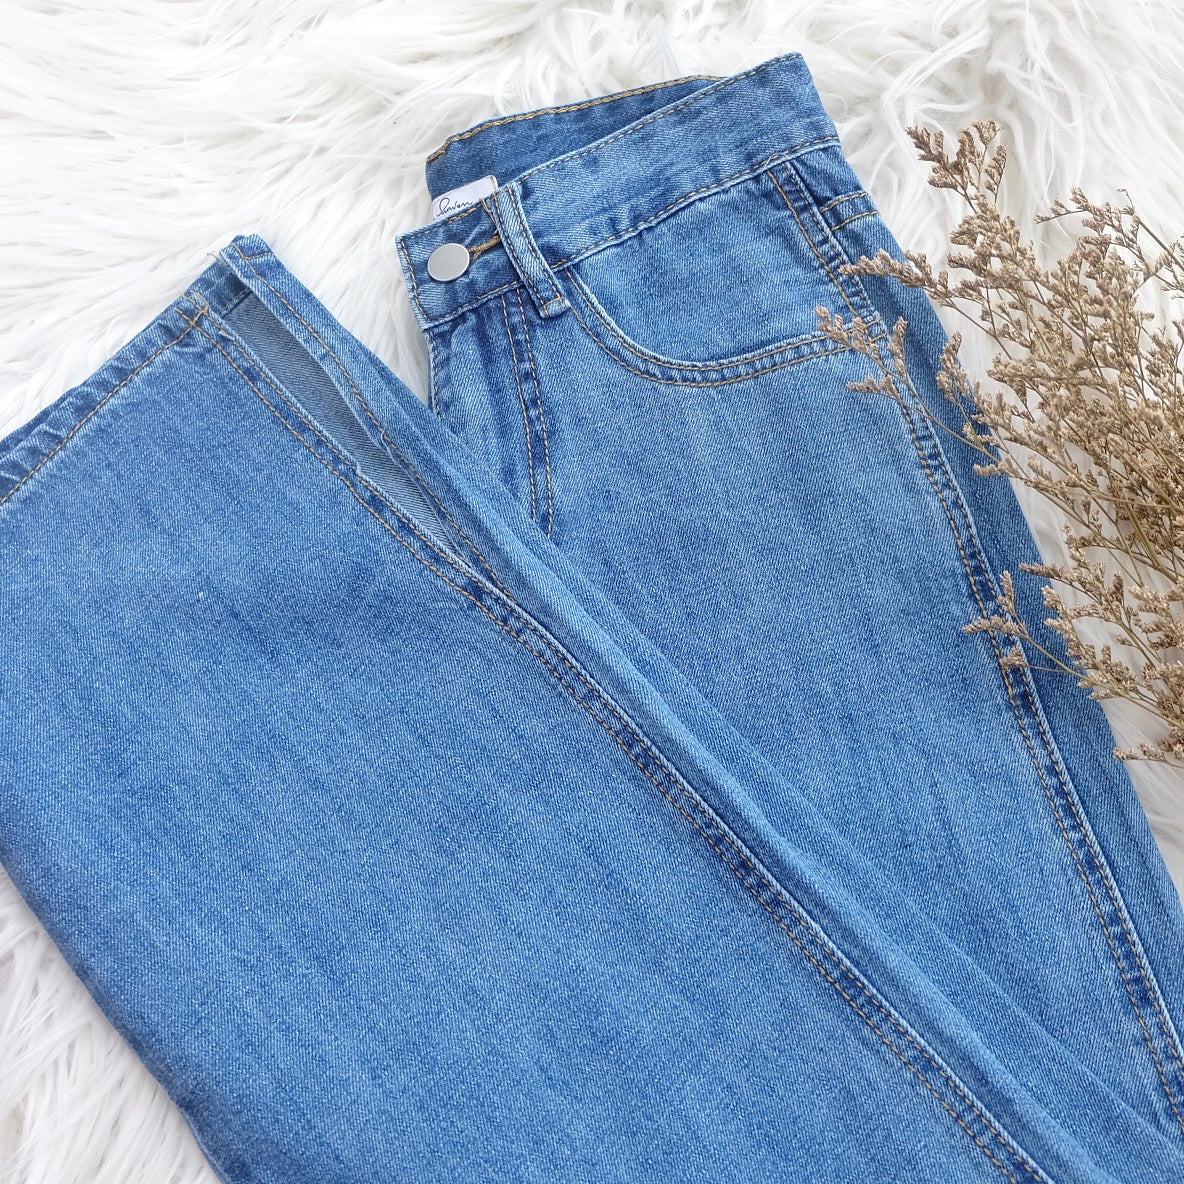 FLYNN Denim Pants - Dark Wash